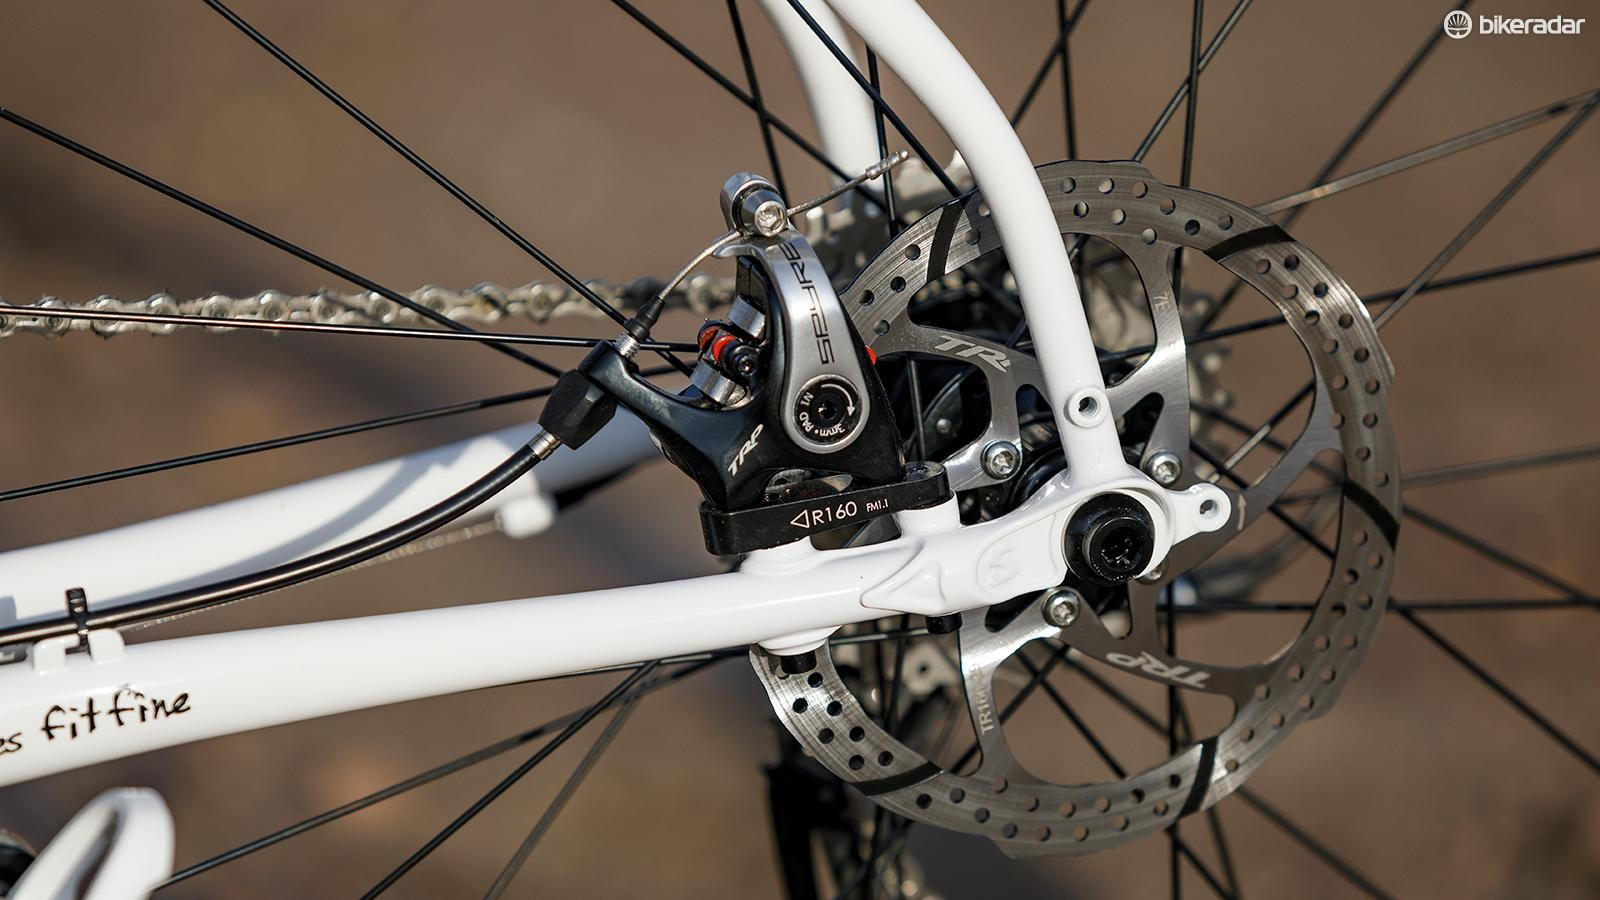 The frame is designed for direct-mount brakes